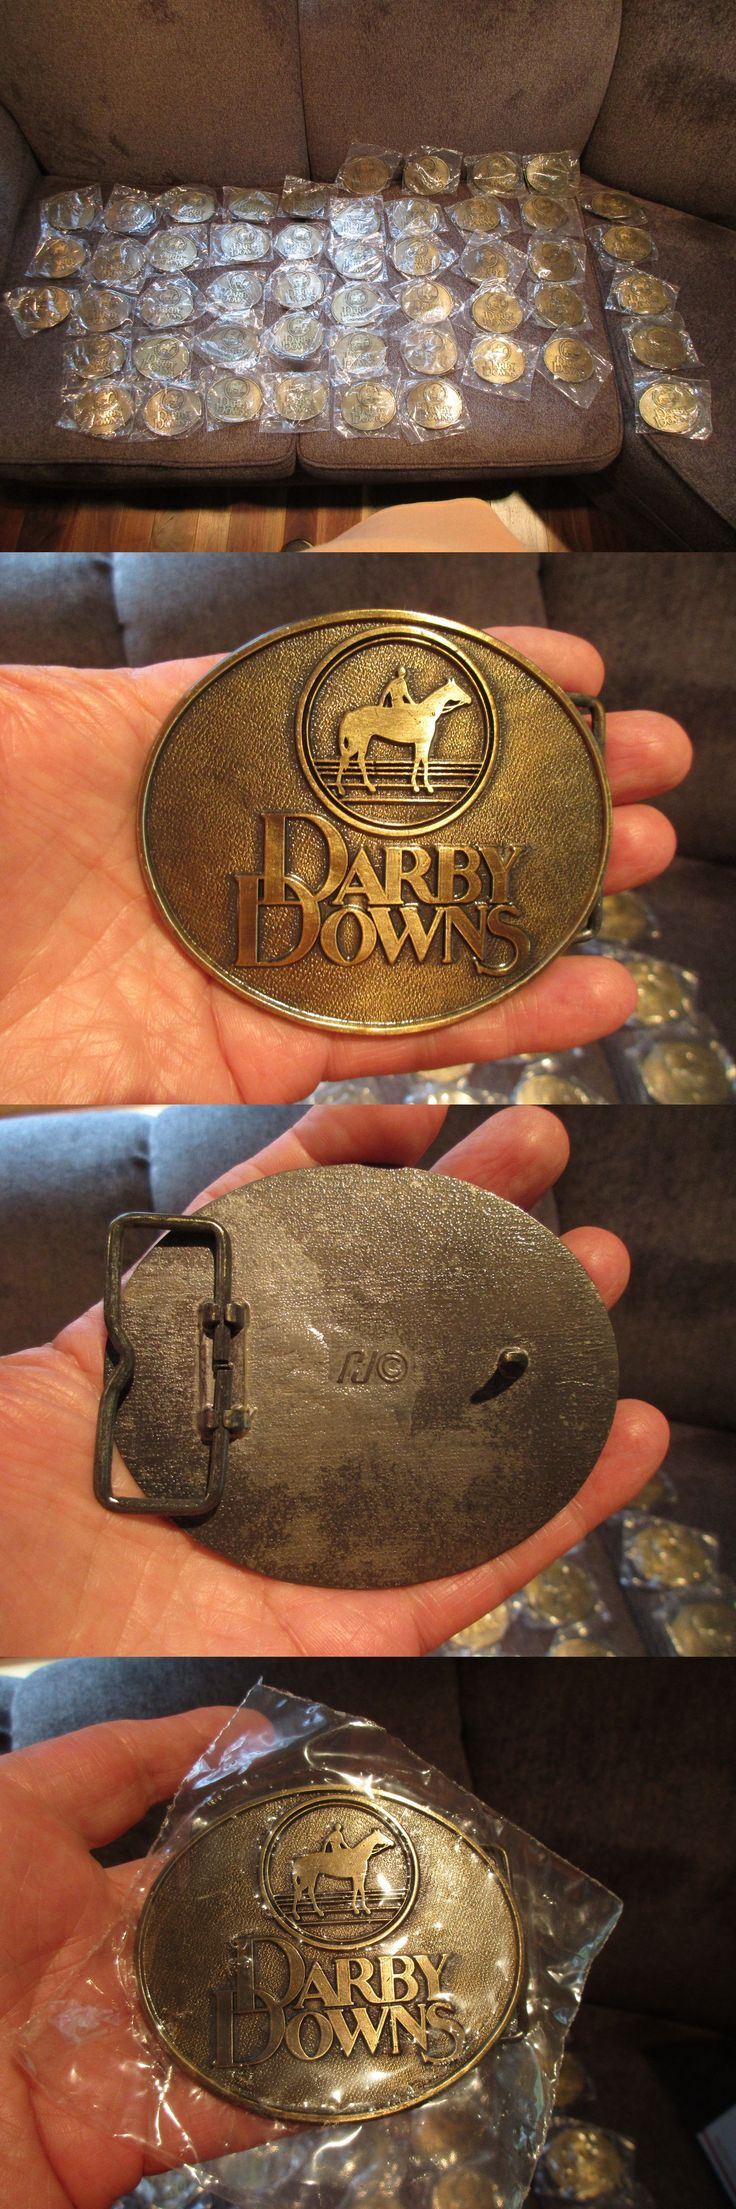 Horse Racing 429: 50 Darby Downs Horse Racing Belt Buckles New In Original Package -> BUY IT NOW ONLY: $85 on eBay!